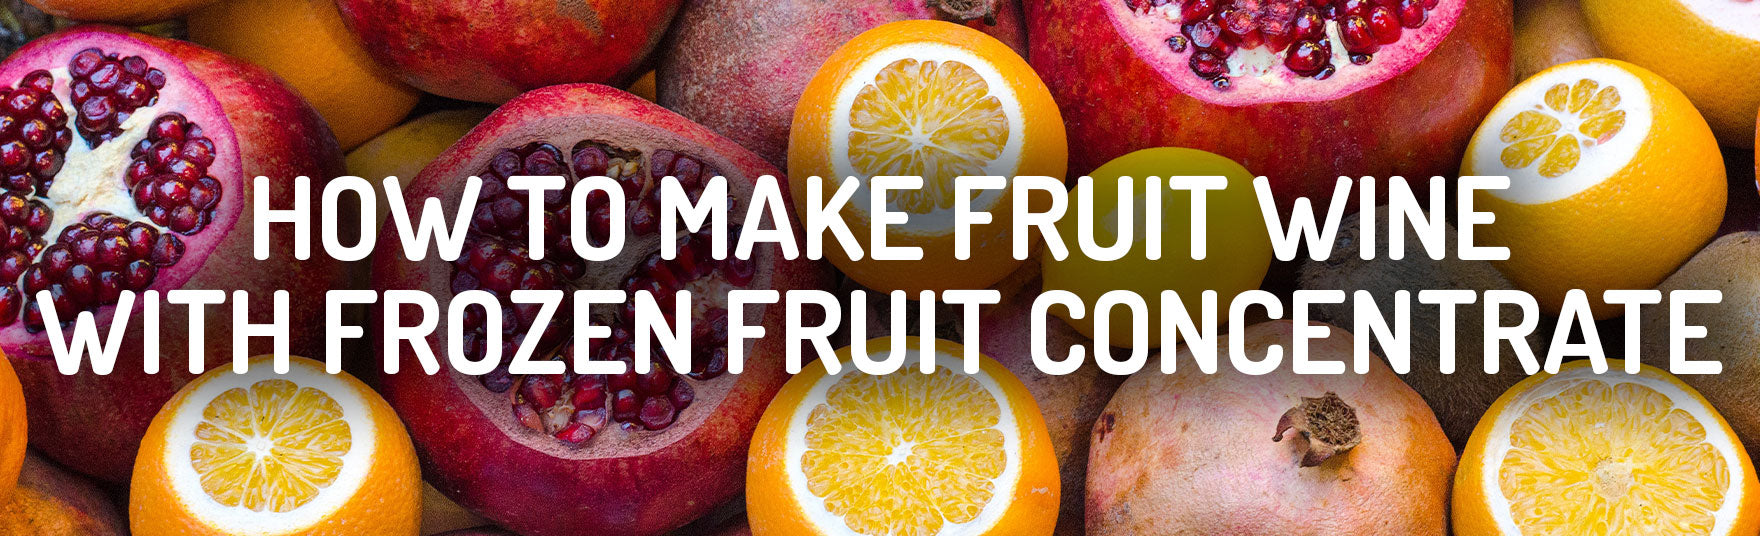 How To Use Juice Concentrate To Make Fruit Wine